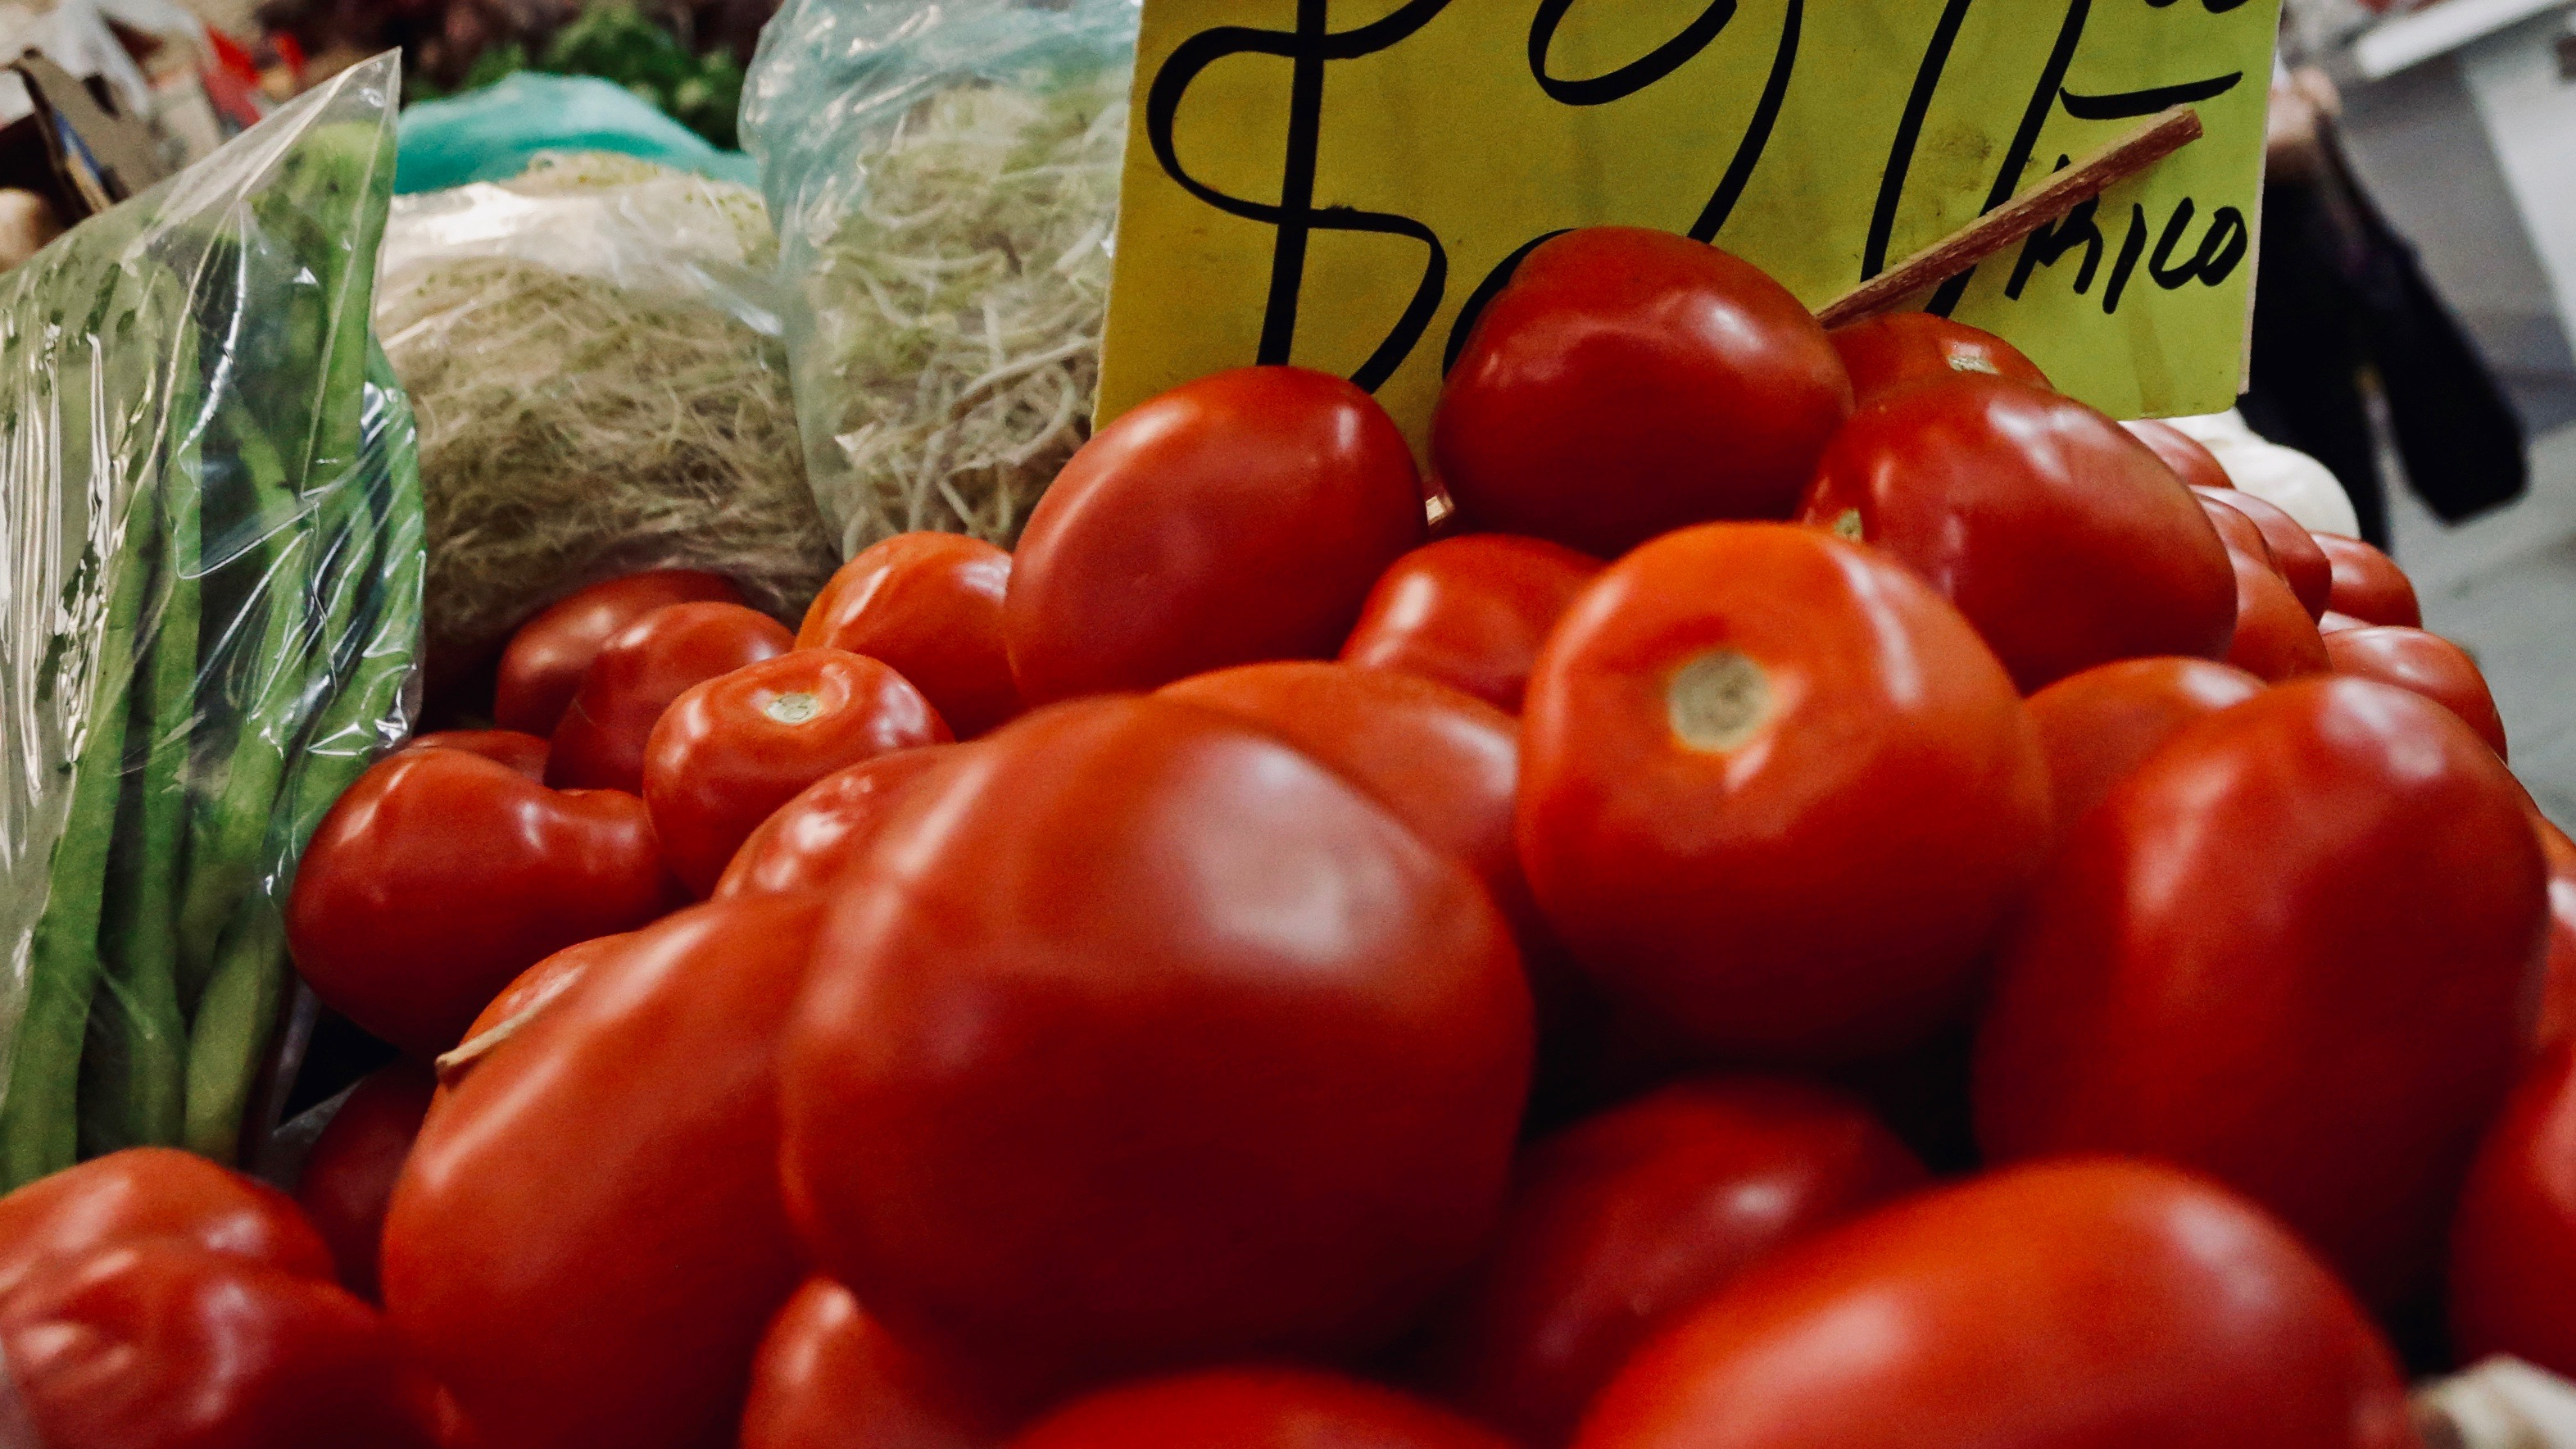 Tomatoes in a market in Mexico City.